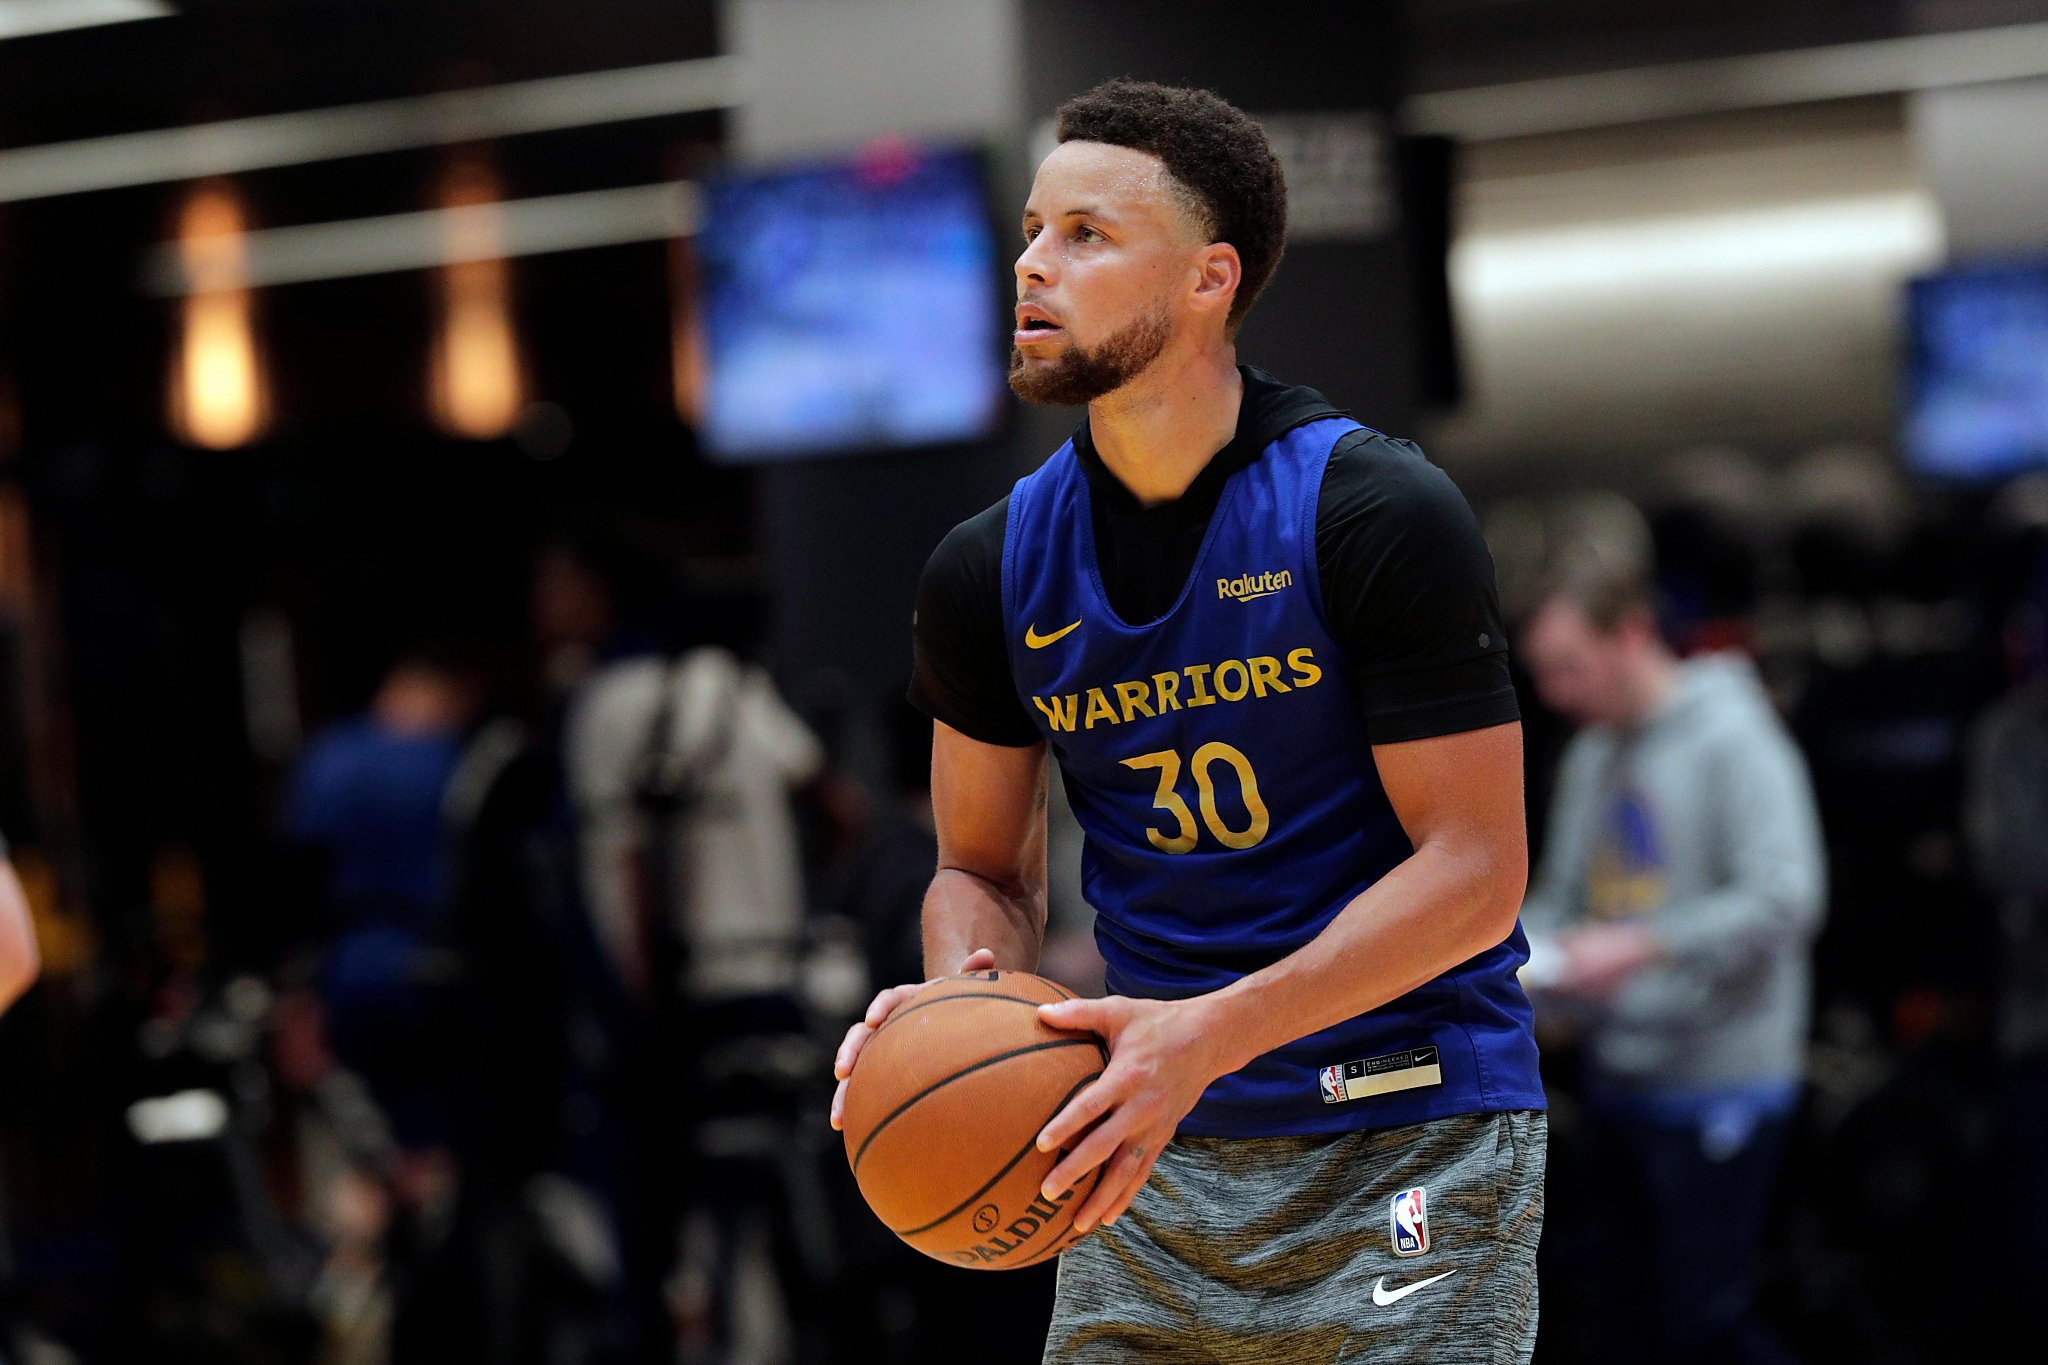 'You see the brilliance': Stephen Curry dazzles in first scrimmage since injury